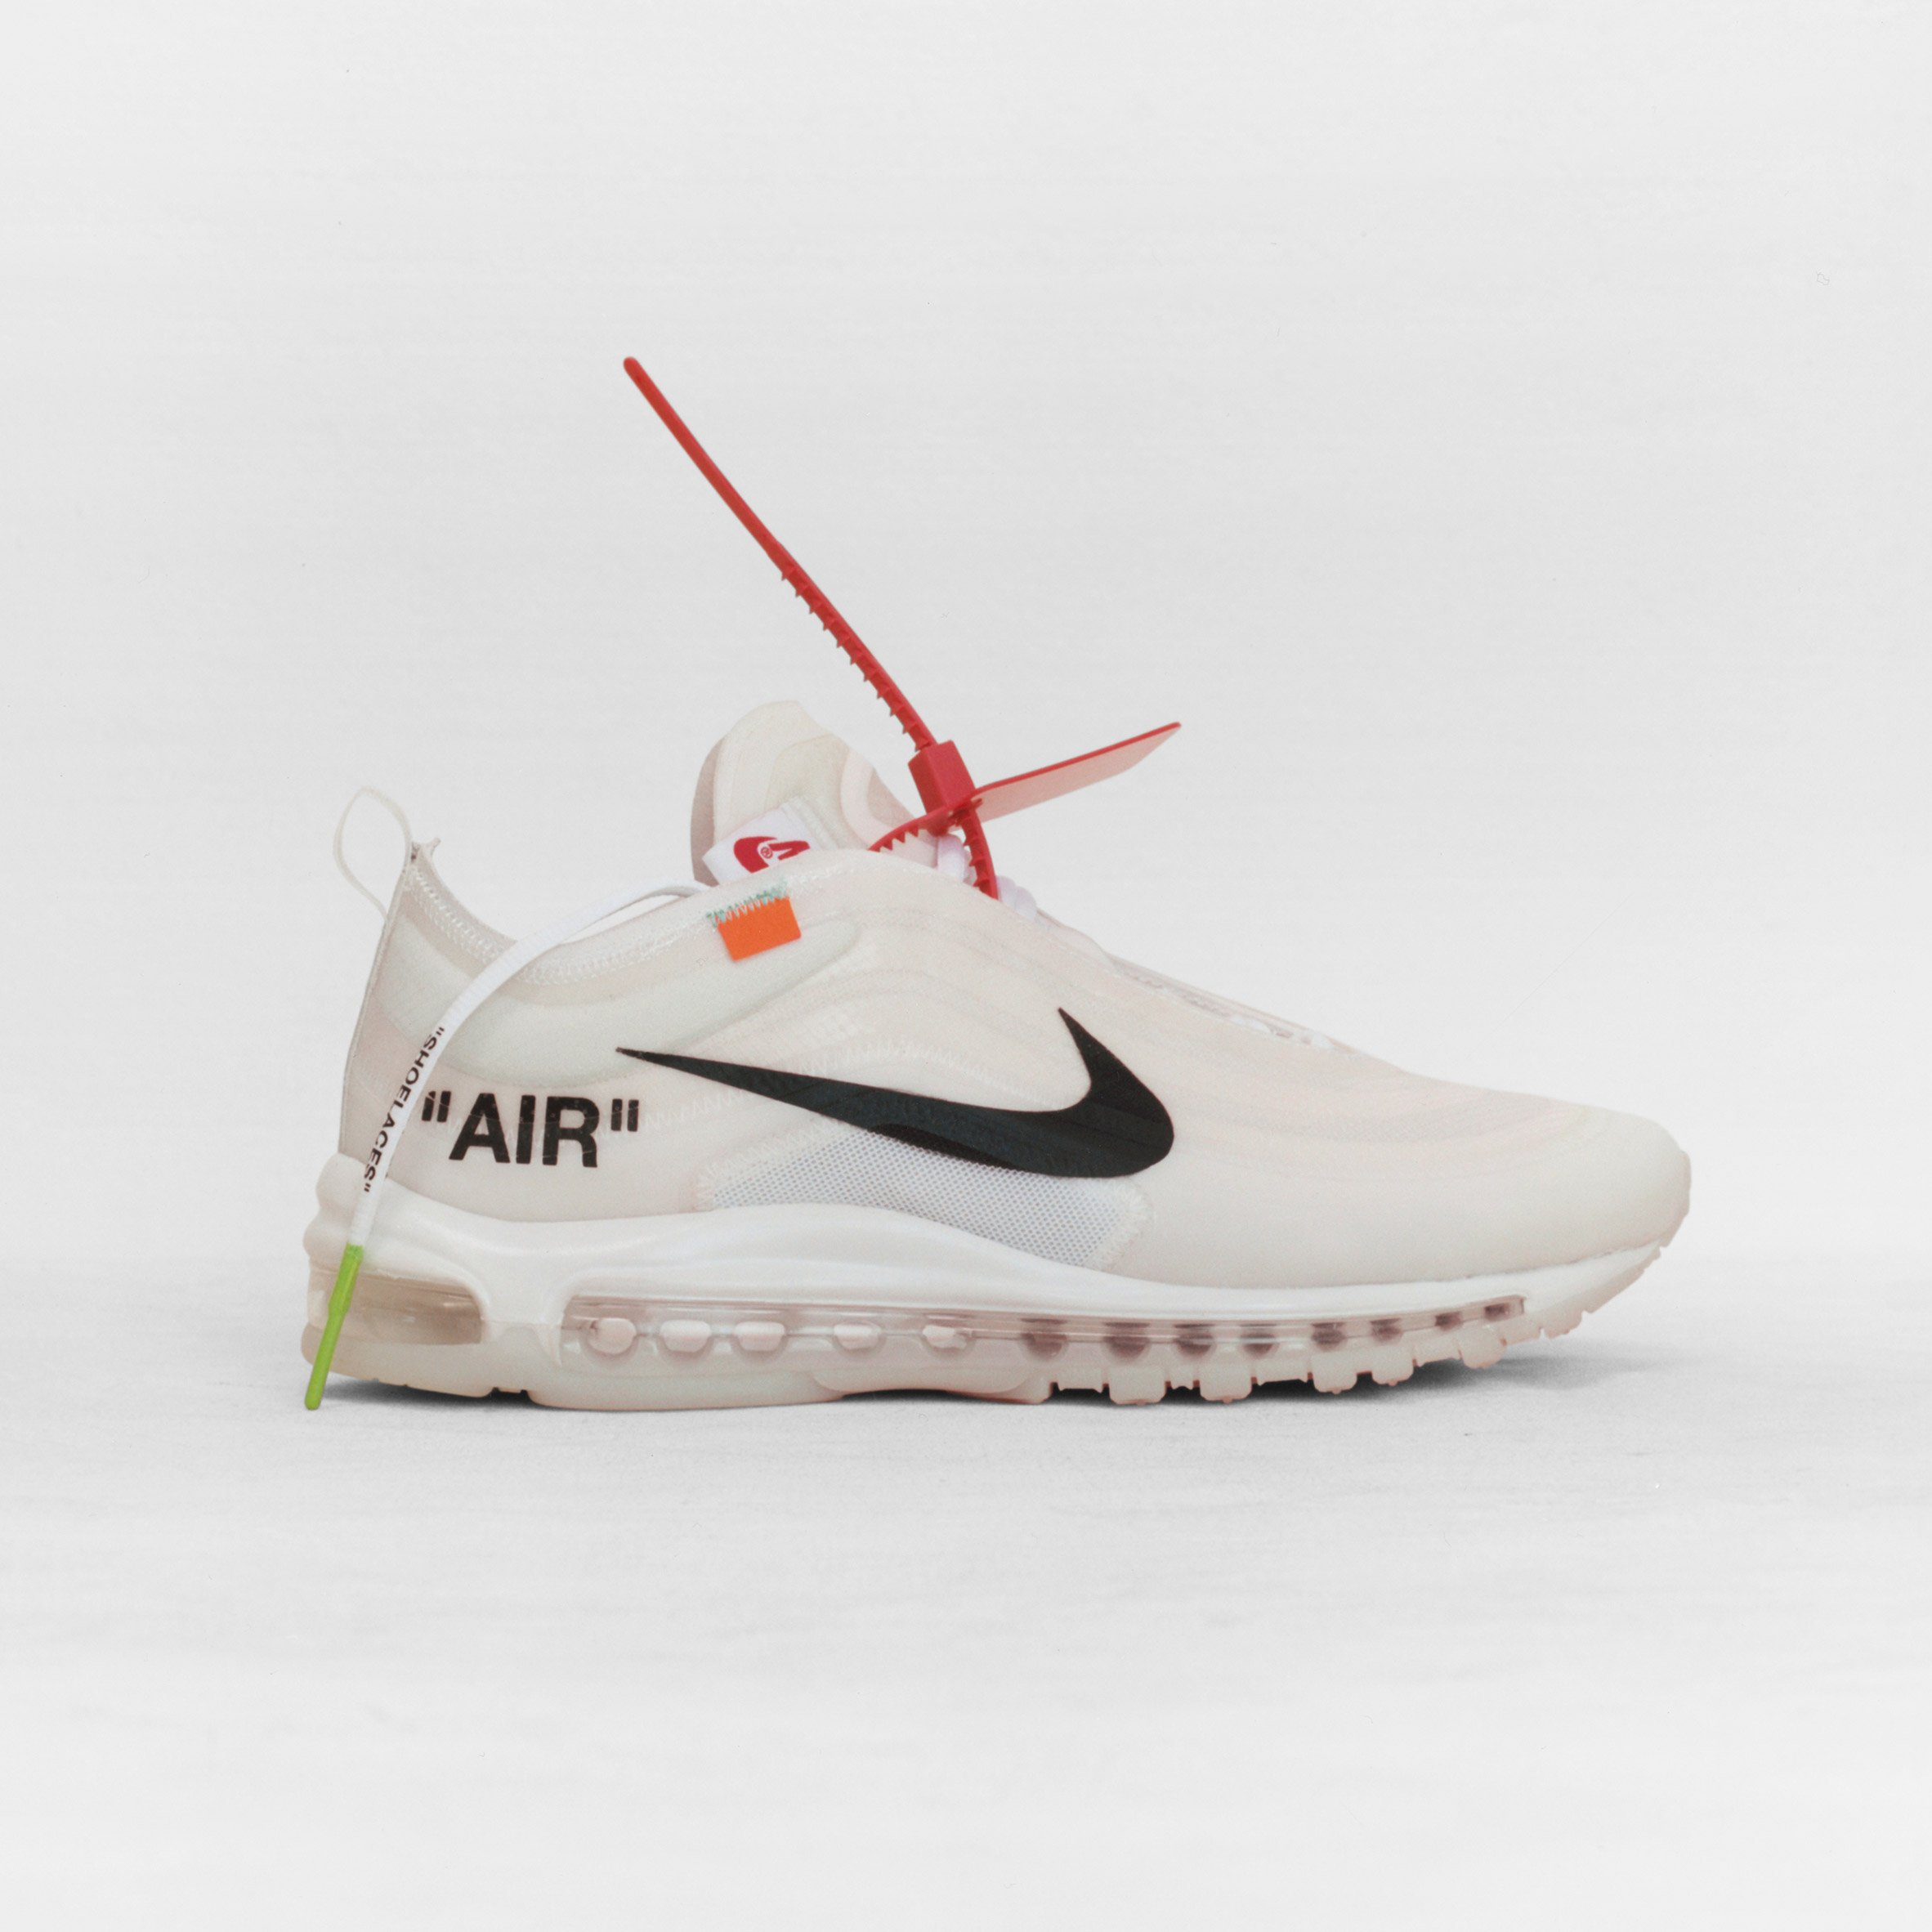 Most Sneakers Of Iconic 10 3novices Abloh Nike's virgil